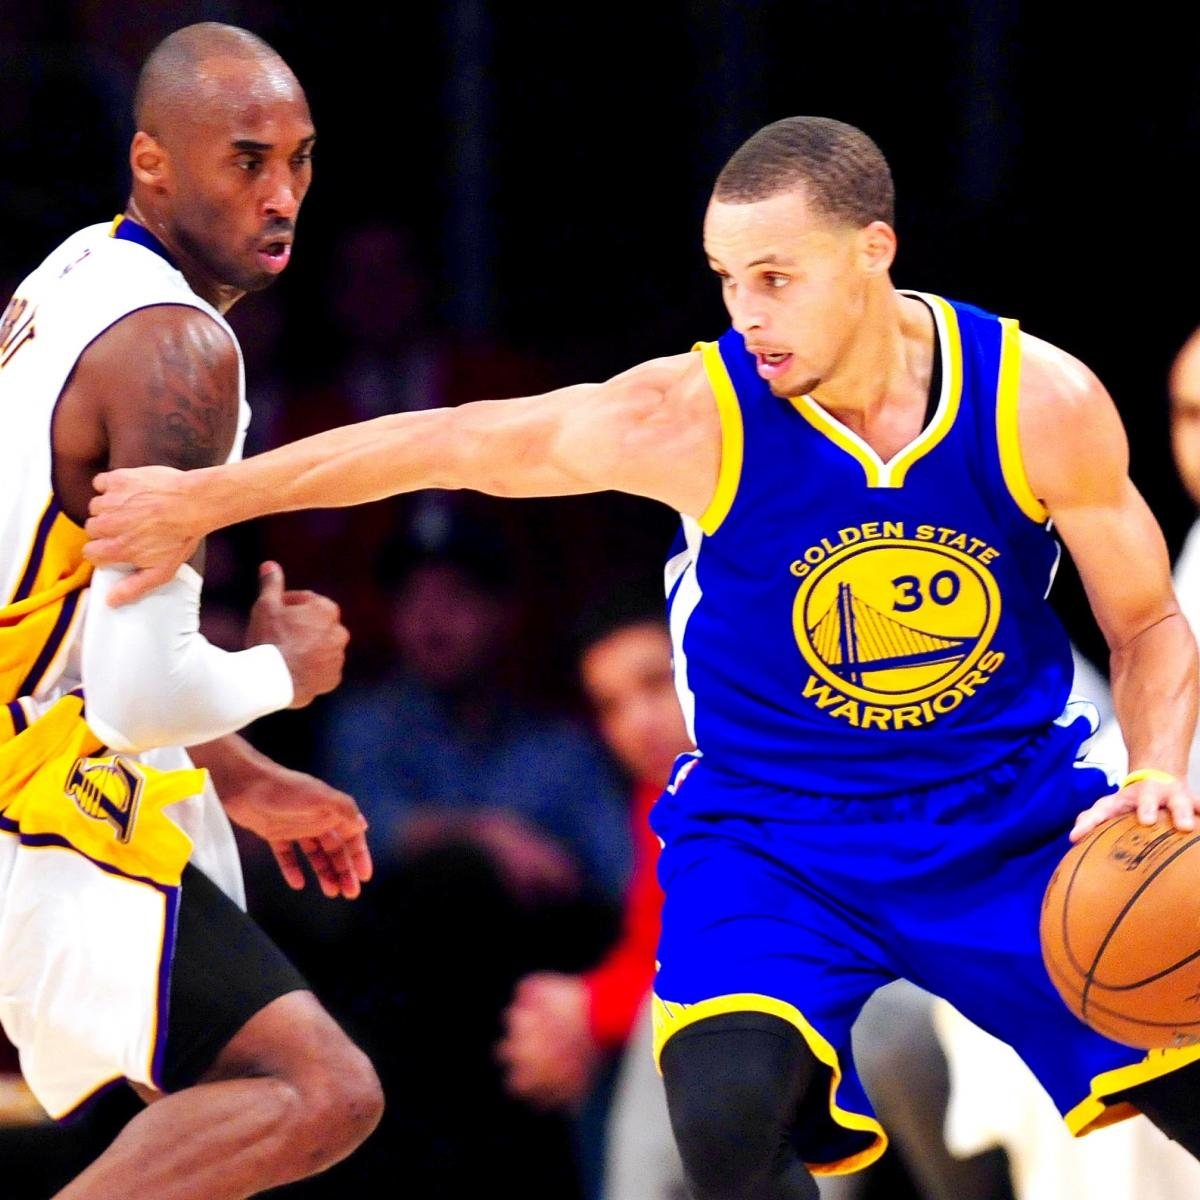 Warriors Come Out To Play Bleacher Report: Kobe Bryant Tweets Riddle About Defending Steph Curry